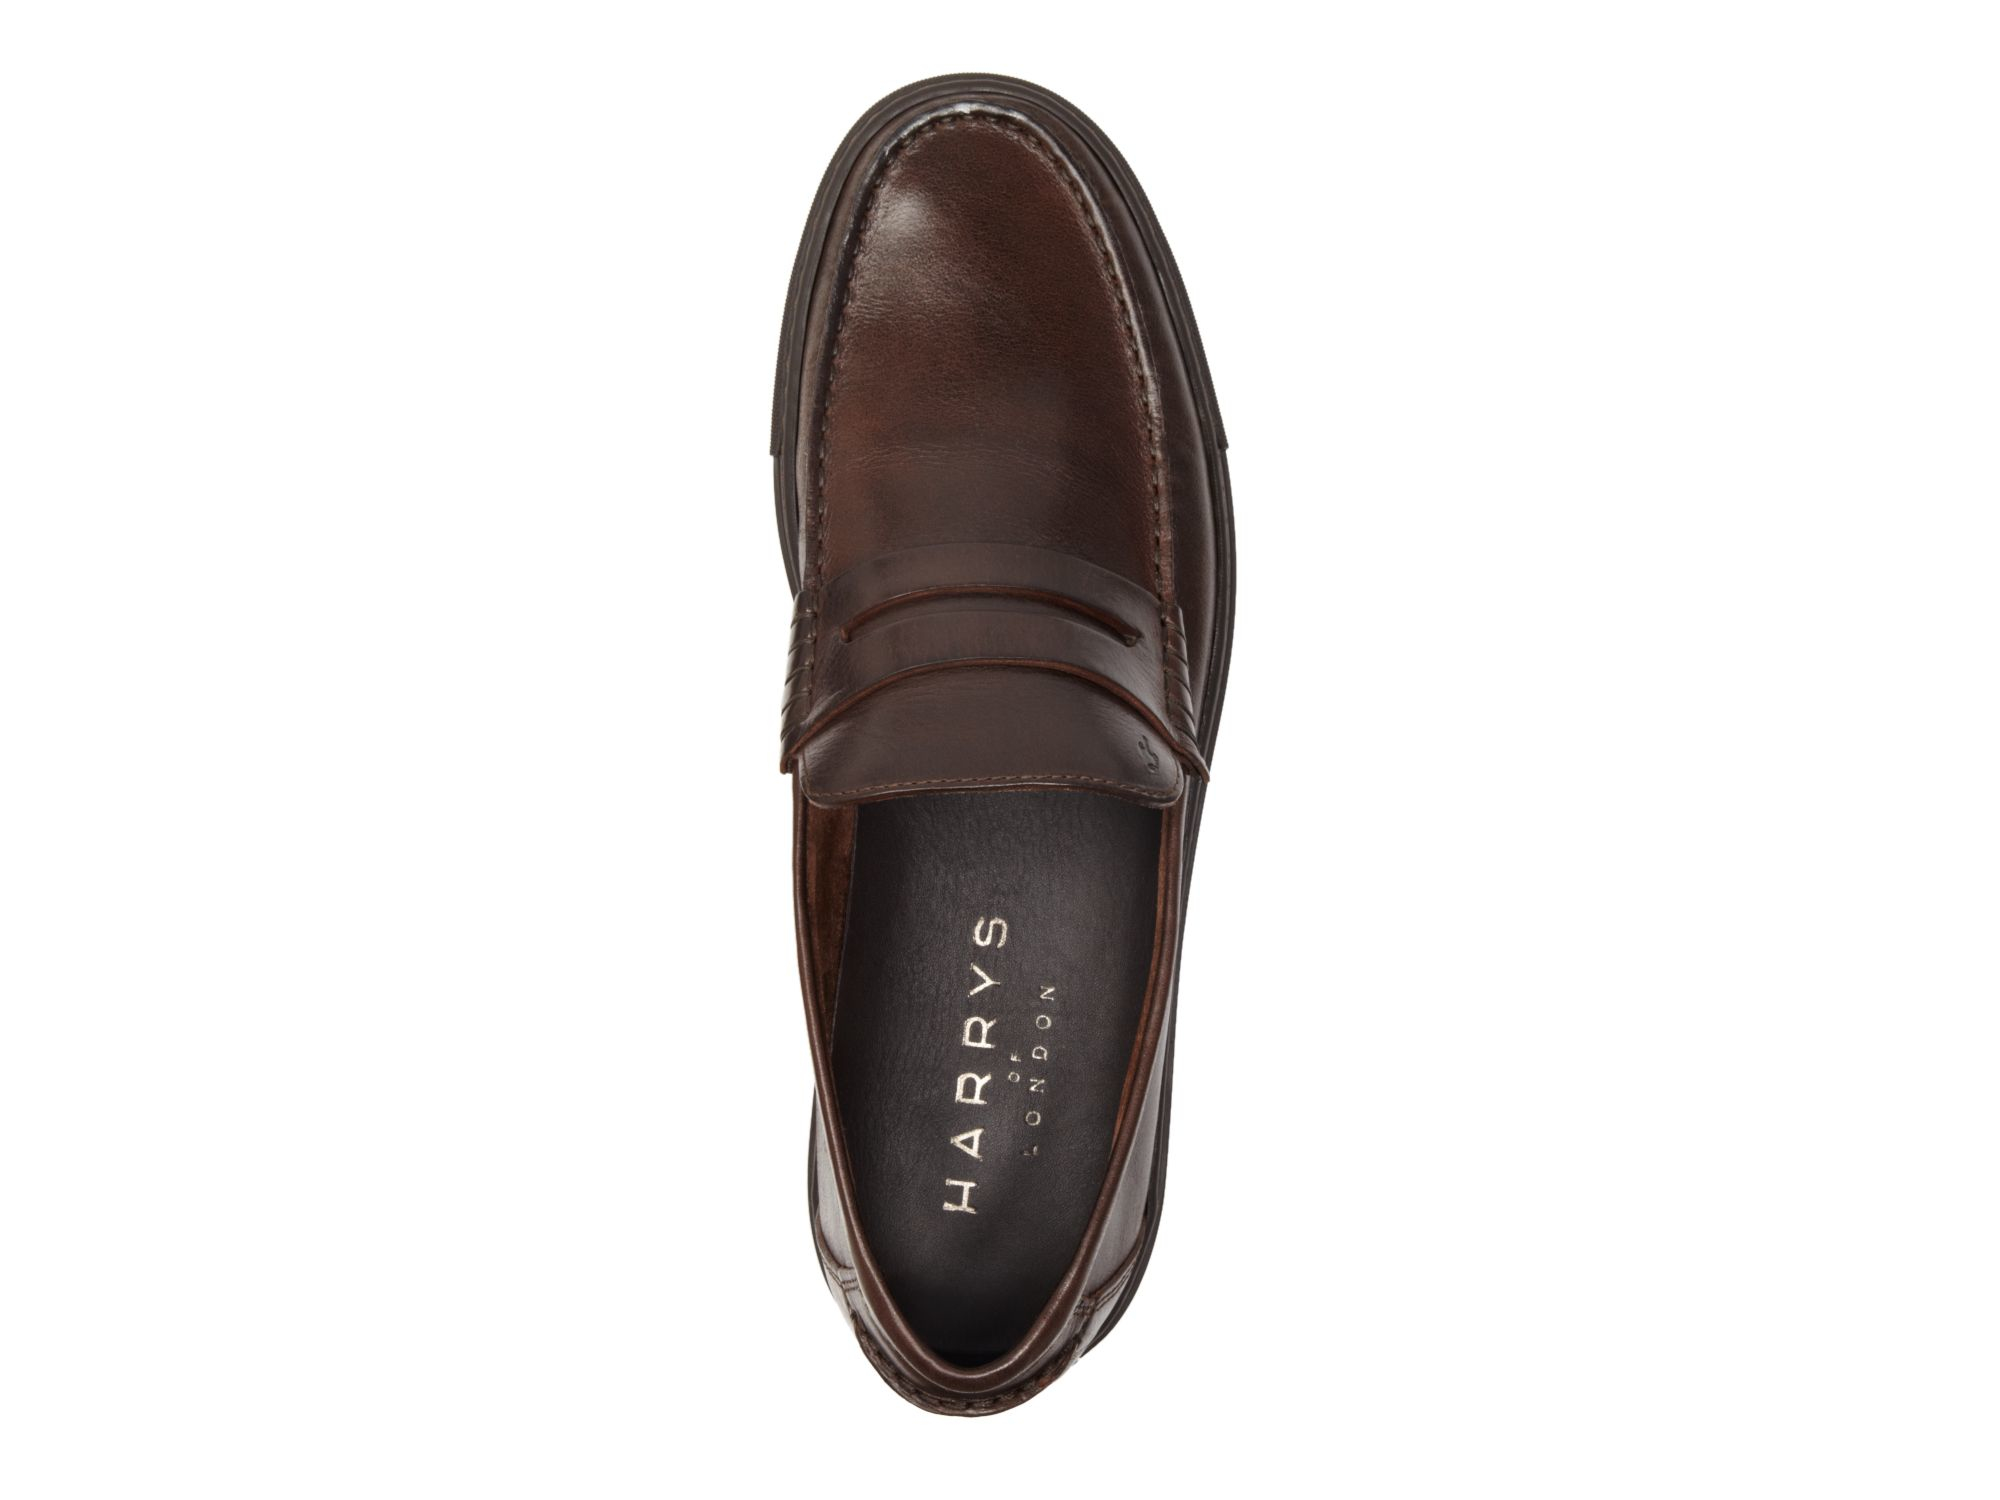 0240c157aff Lyst - Harry s Of London Dean Jones Basel Loafers With Trainer Sole ...